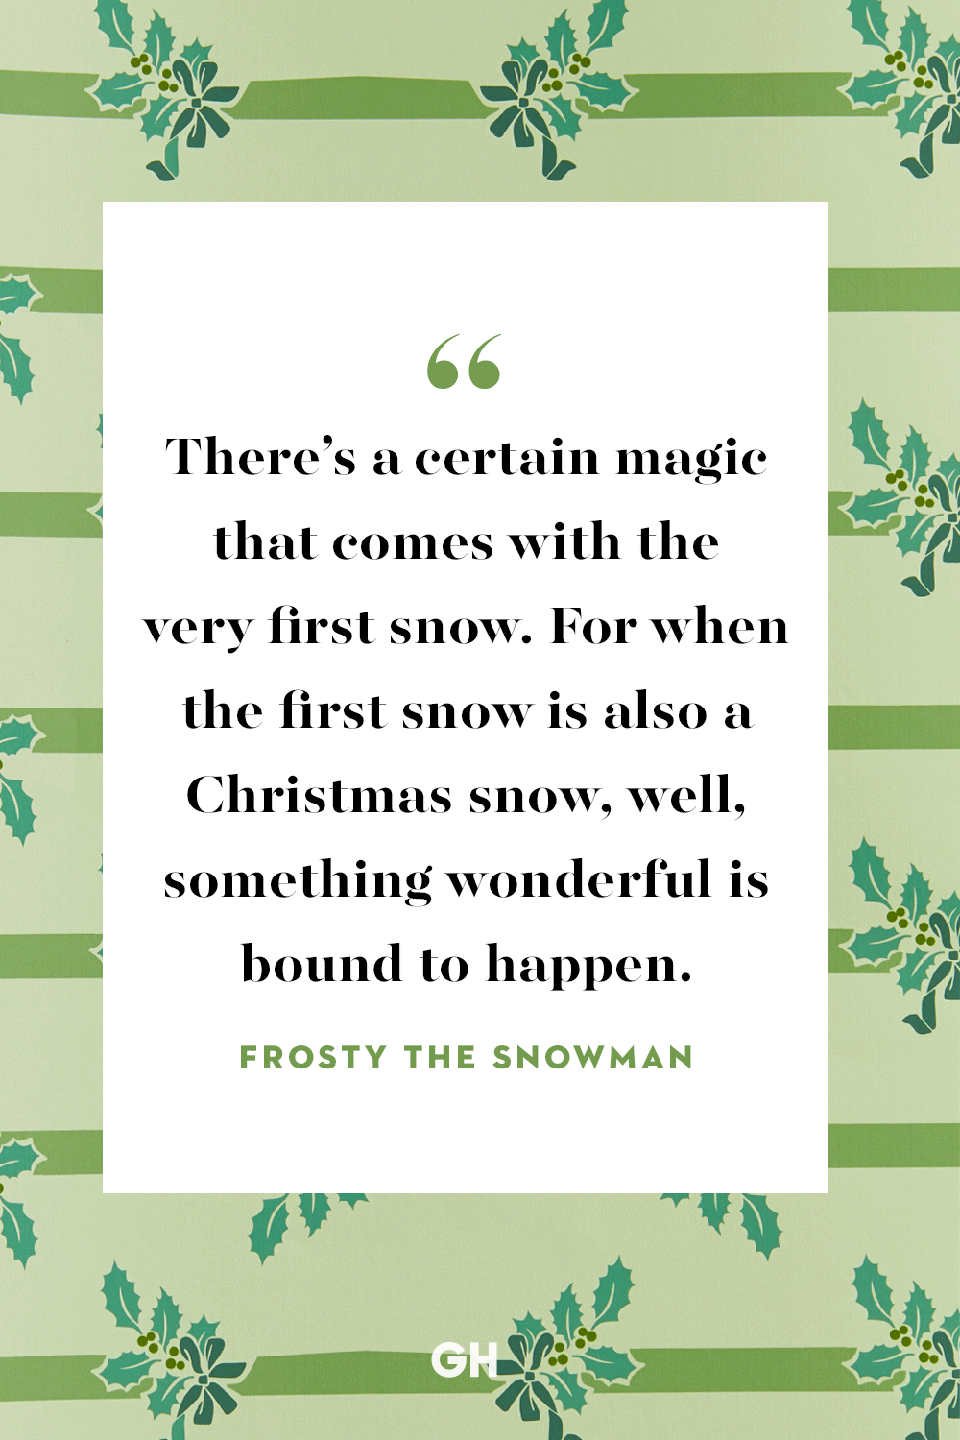 "<p>There's a certain magic that comes with the very first snow. For when the first snow is also a Christmas snow, well, something wonderful is bound to happen.</p><p><strong>RELATED:</strong> <a href=""https://www.goodhousekeeping.com/holidays/christmas-ideas/g2680/christmas-songs/"" rel=""nofollow noopener"" target=""_blank"" data-ylk=""slk:51 Festive Christmas Songs to Get You in the Holiday Spirit"" class=""link rapid-noclick-resp"">51 Festive Christmas Songs to Get You in the Holiday Spirit</a></p>"